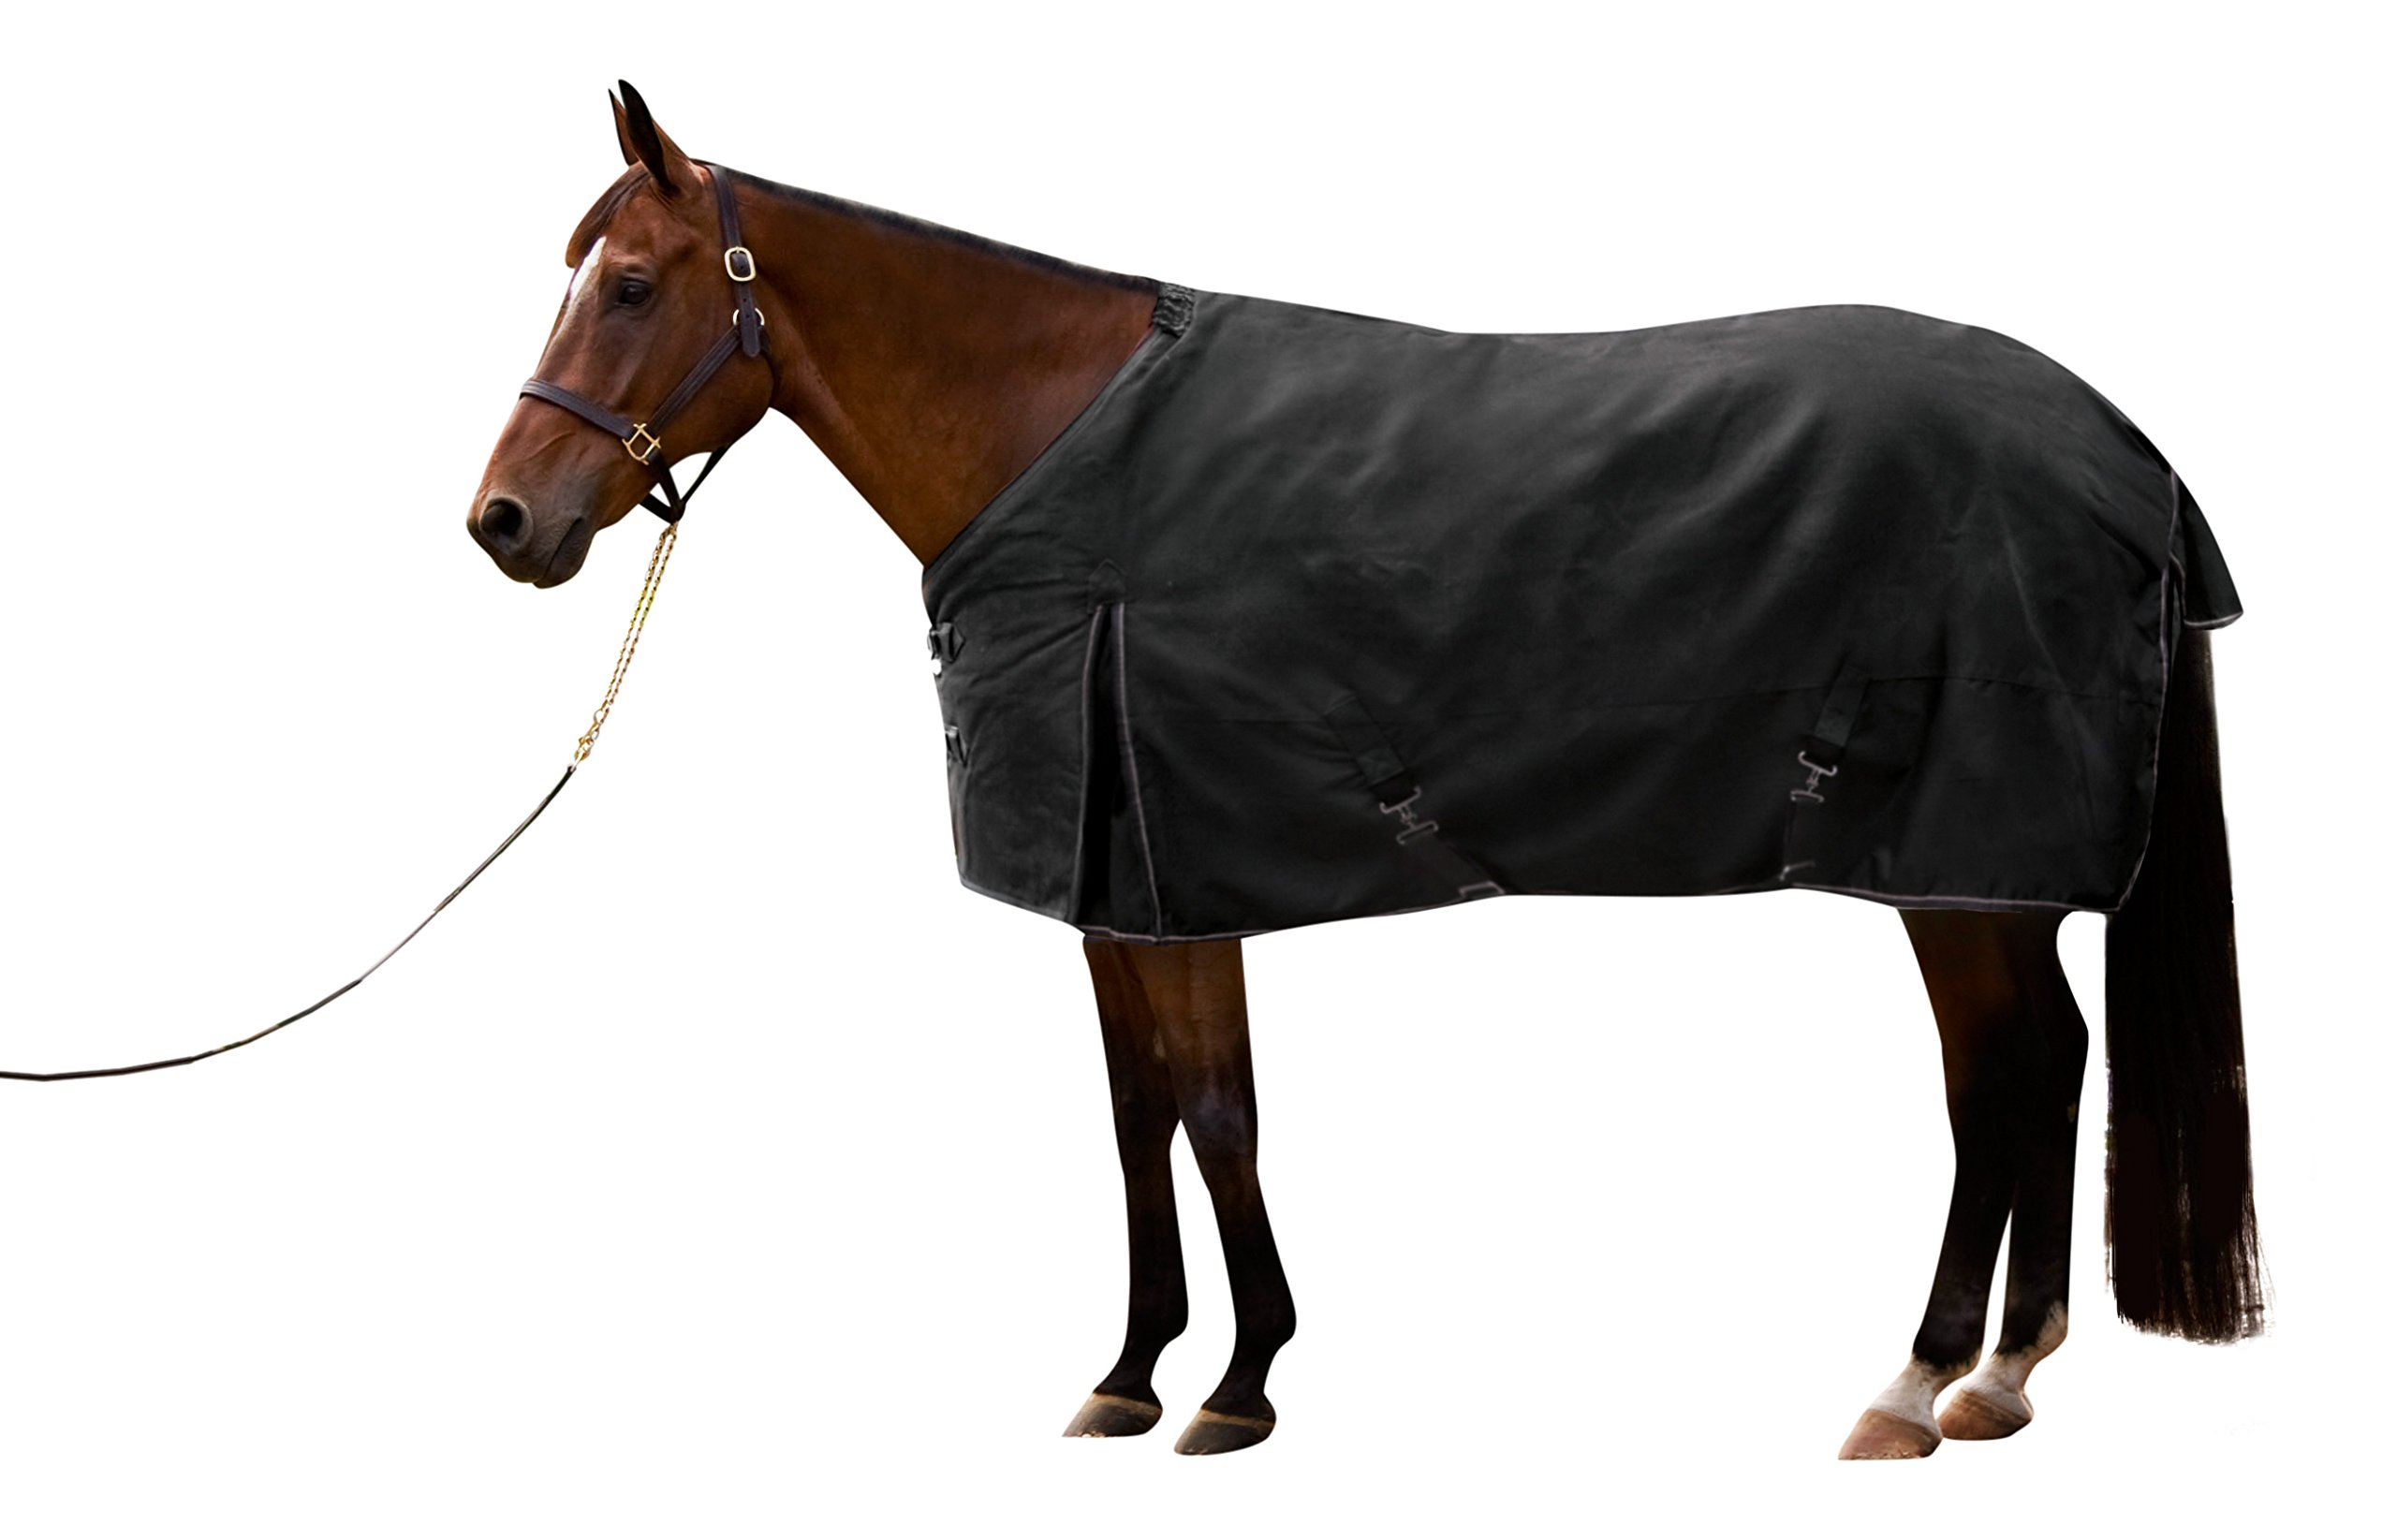 Kensington KPP Kens-i-Tech Light Weight Turnout Rug   Durable, Highly Water Resistant and Breathable   Black, Size 78